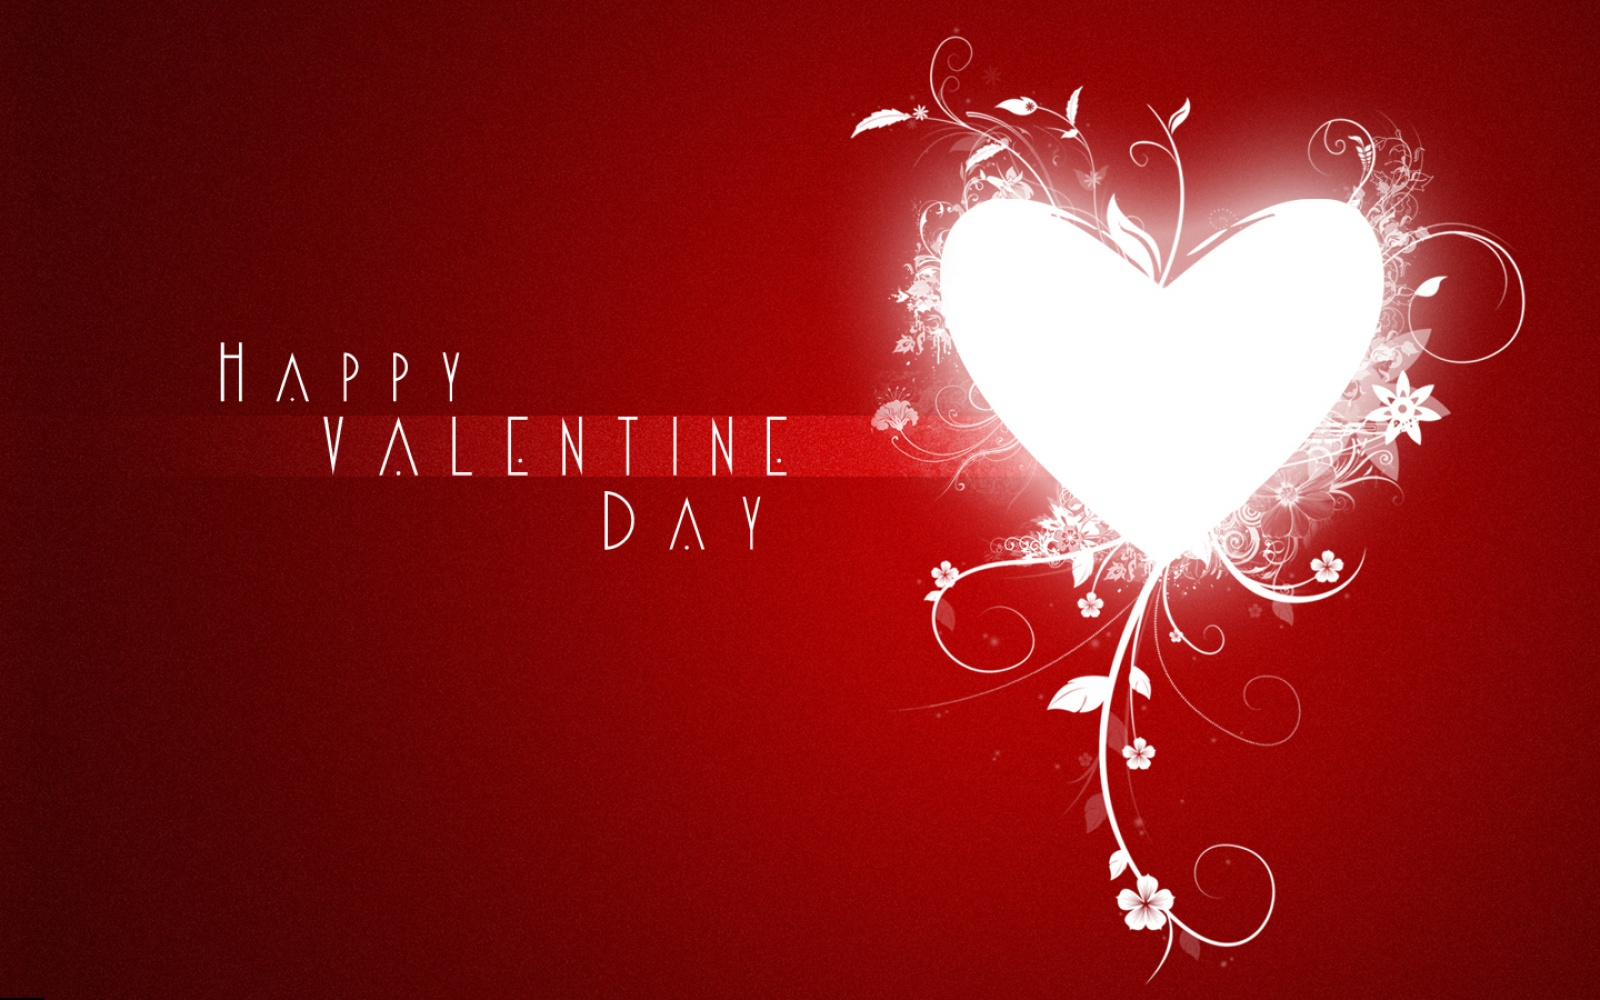 Valentines Day Wallpaper 2012